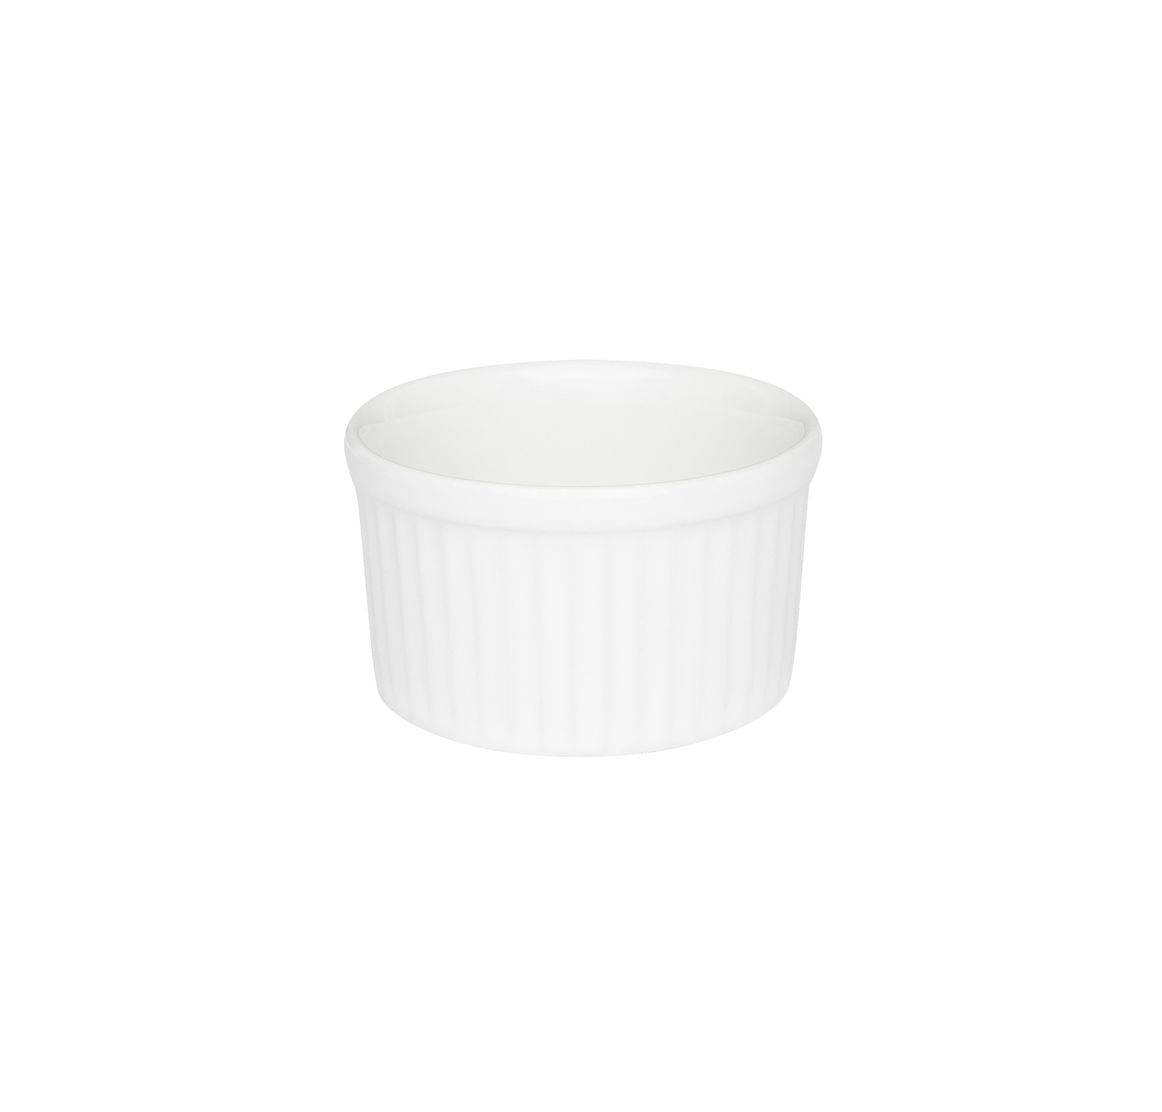 Tigela Ramequin 6X3Cm 50Ml - Branco - Oxford Porcelanas